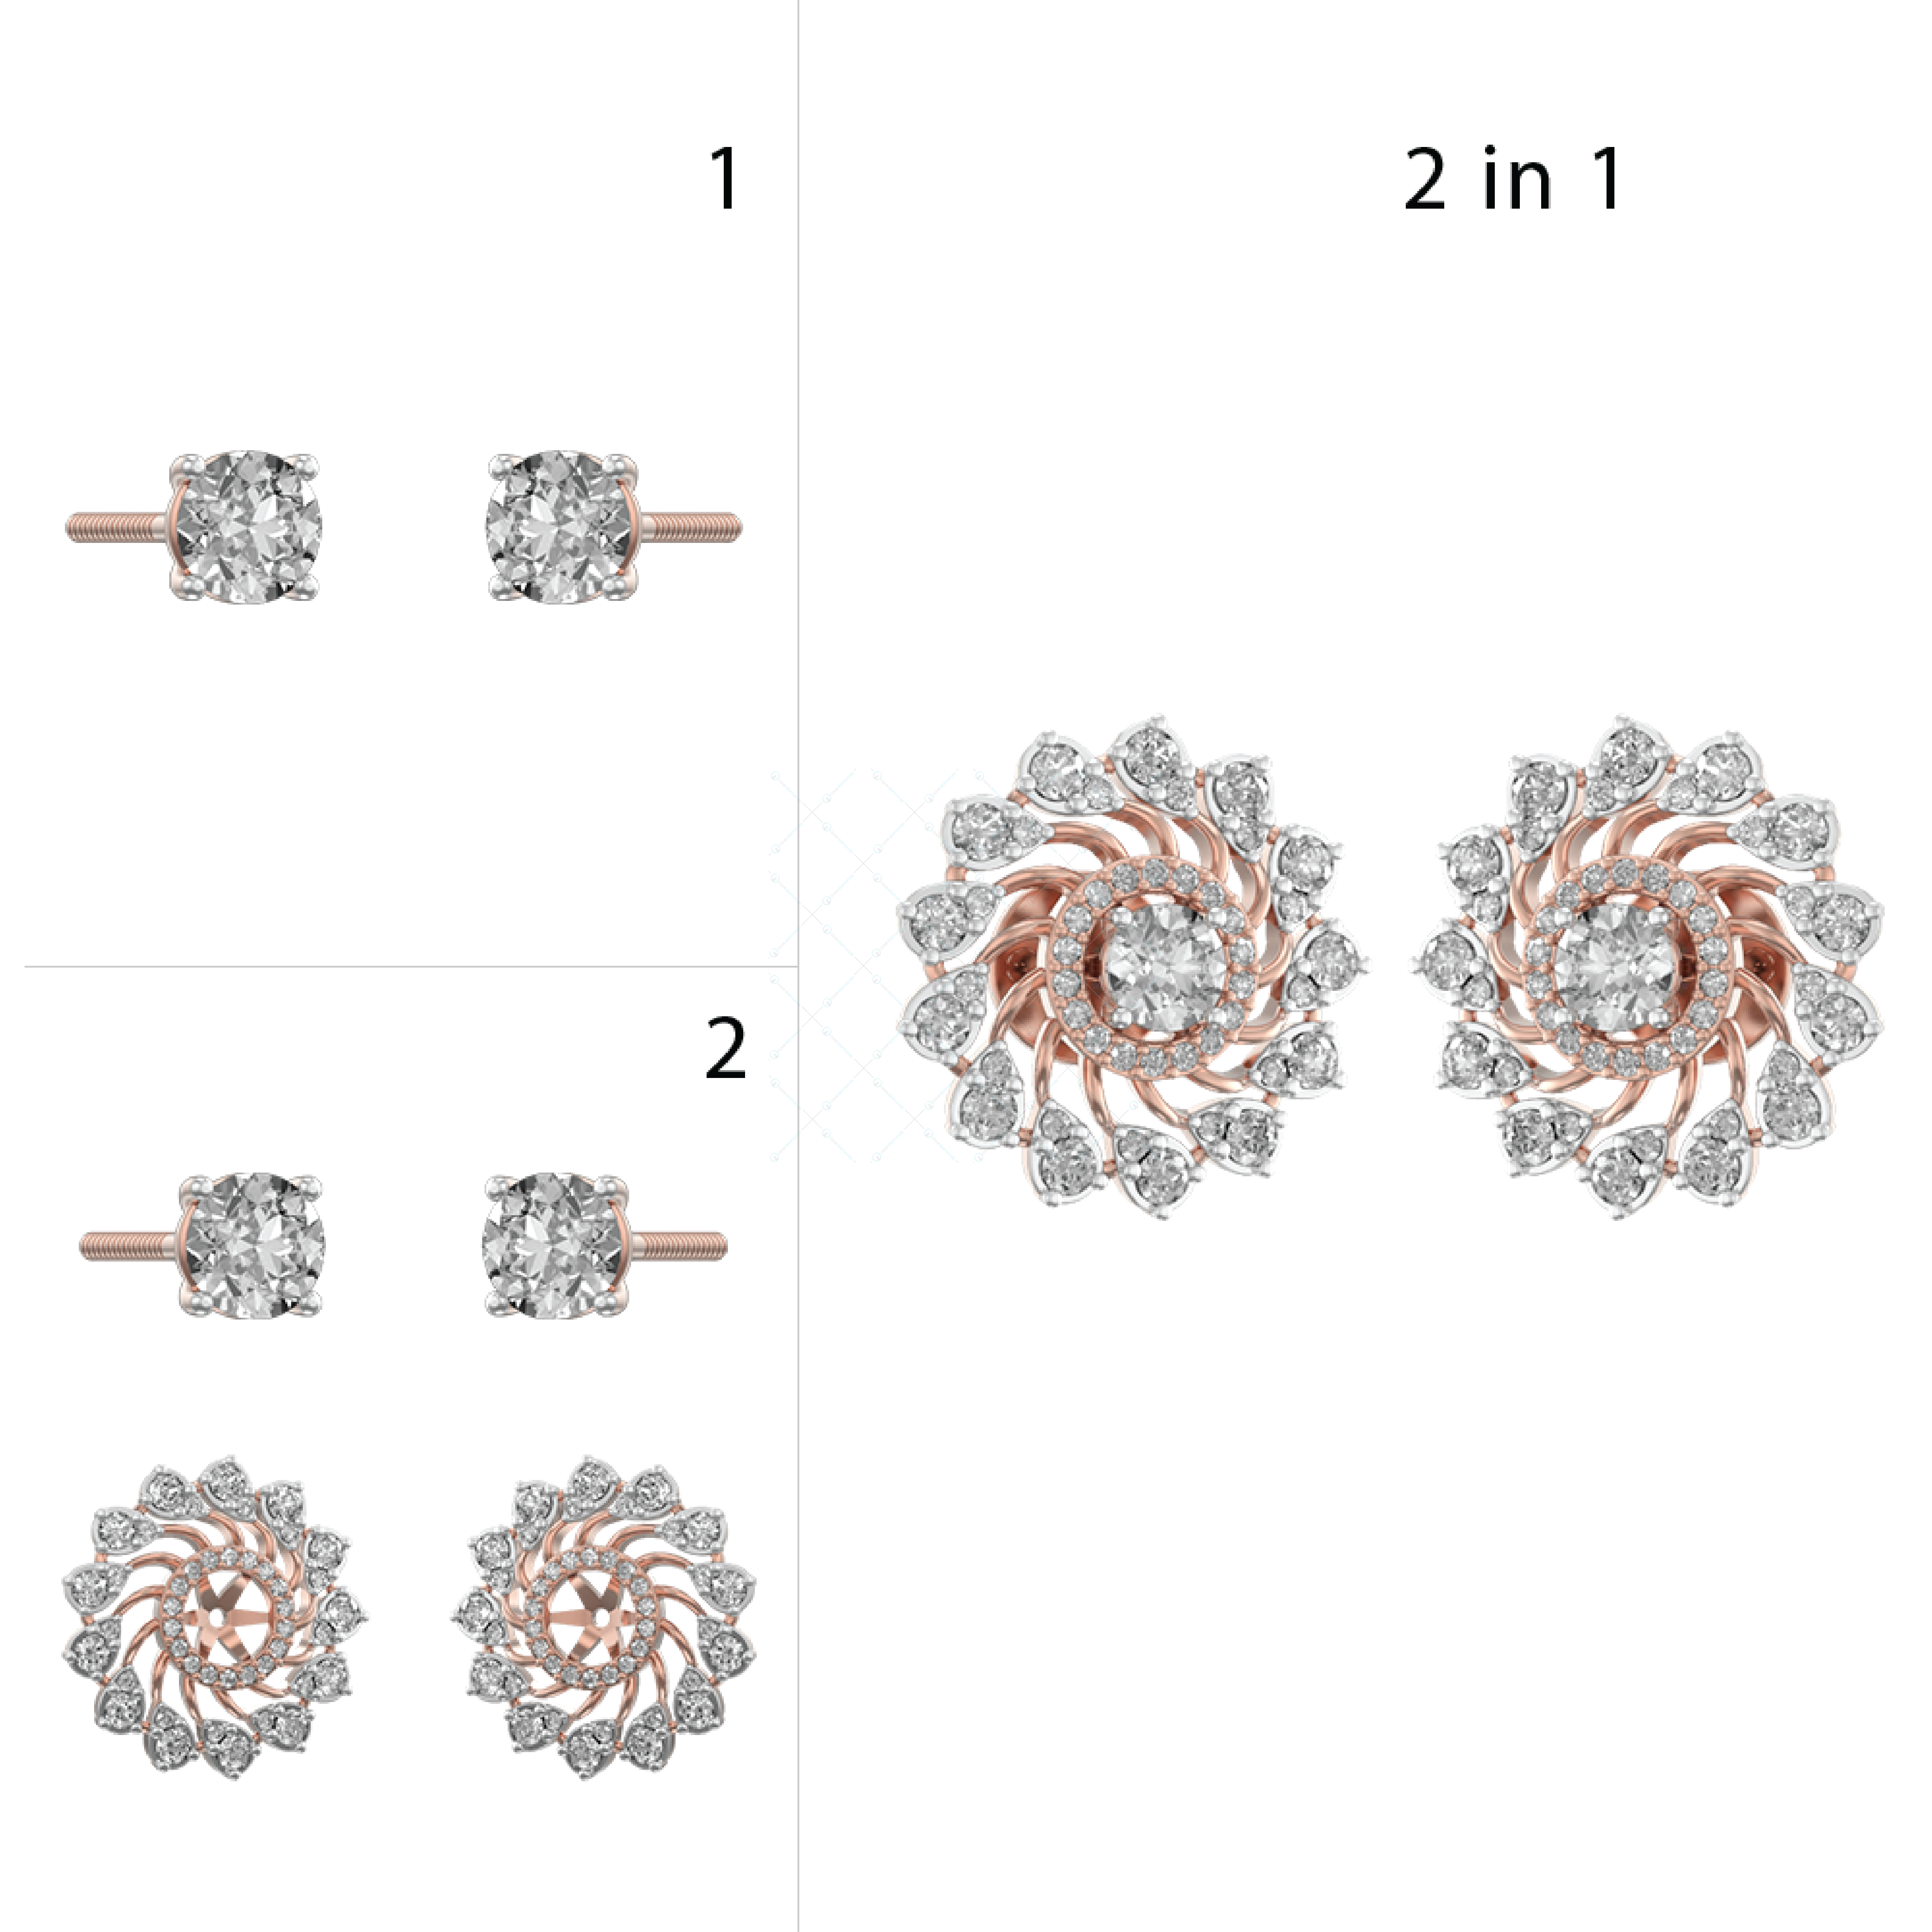 Pirouetting Panache Solitaire Earrings In Pink Gold For Women v1